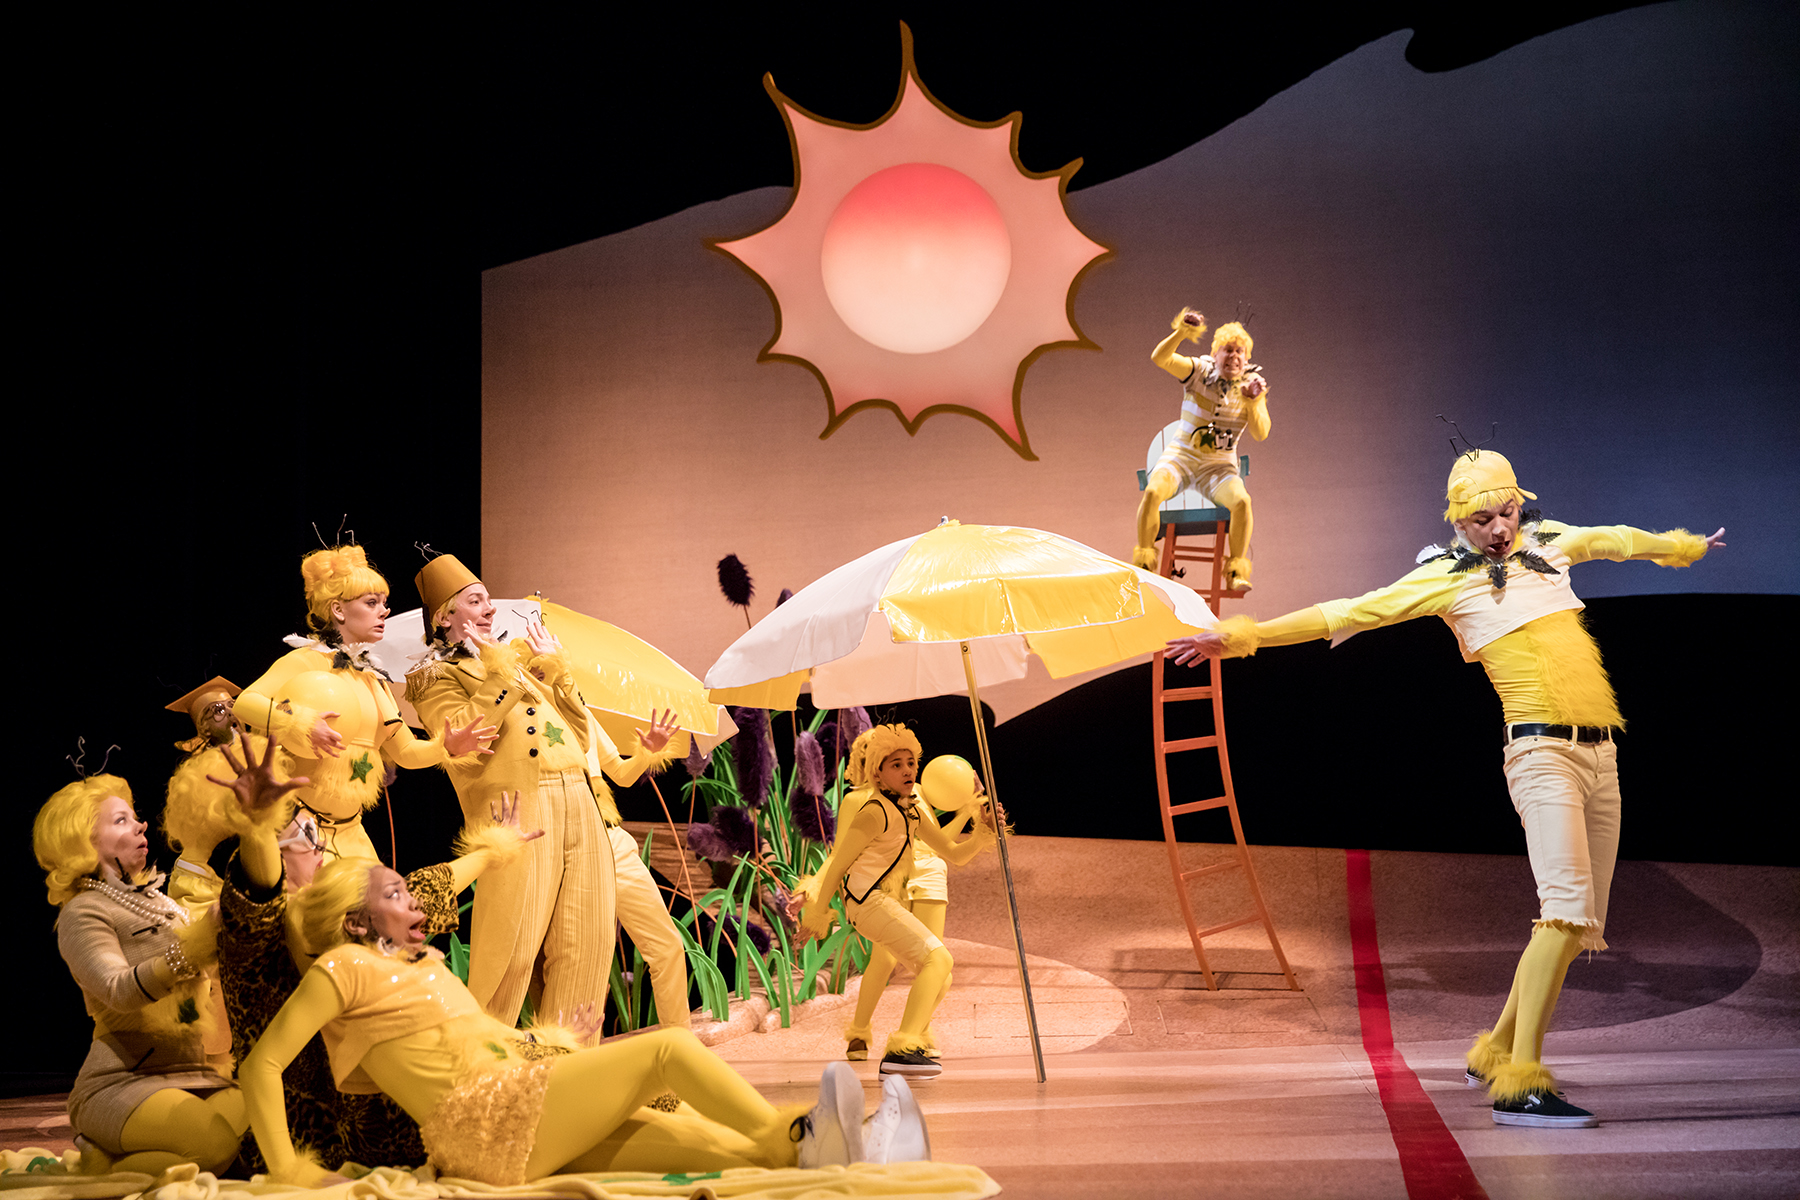 BWW Review: THE SNEETCHES: THE MUSICAL at Children's Theatre Company